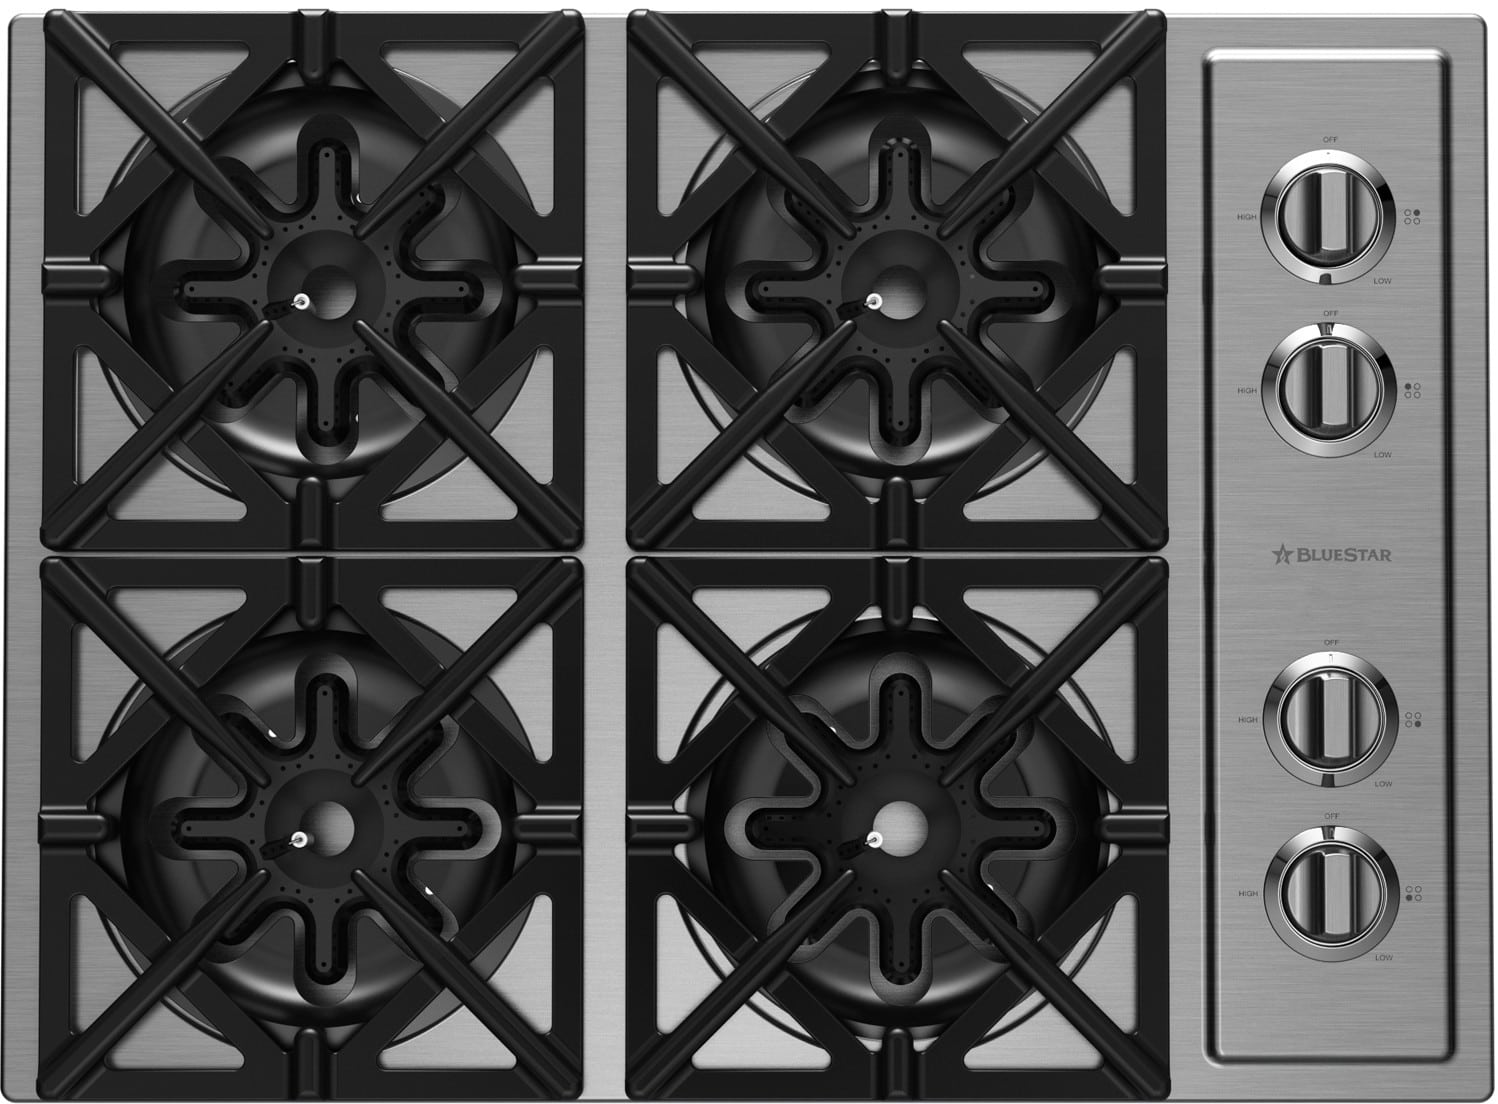 Bluestar Rbct304bssv2ng 30 Inch Drop In Cooktop With 4